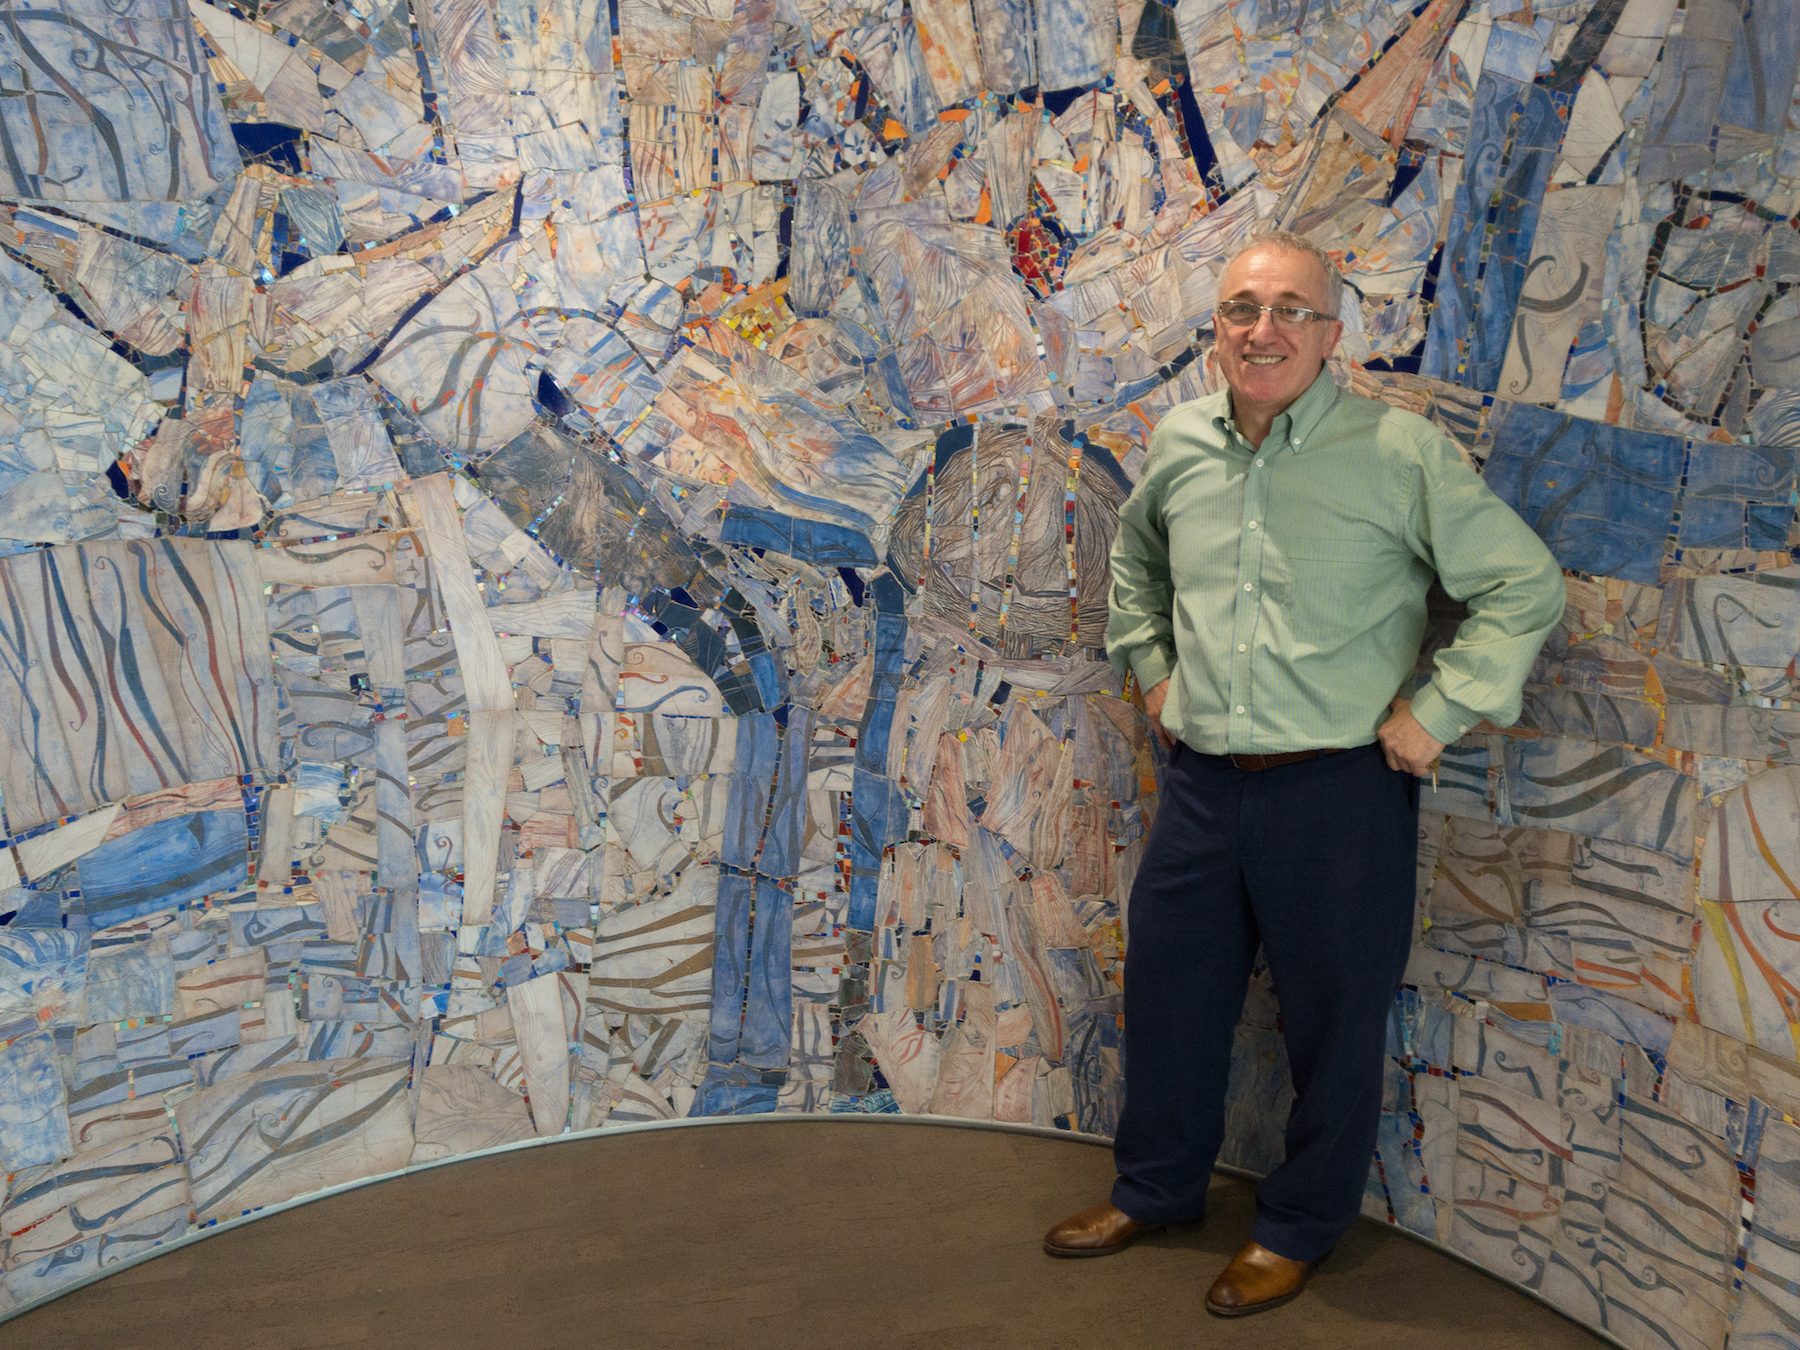 Daud Akhriev at the unveiling of the Erlanger Hospital all-faith chapel mosaic, Sept. 11, 2015.